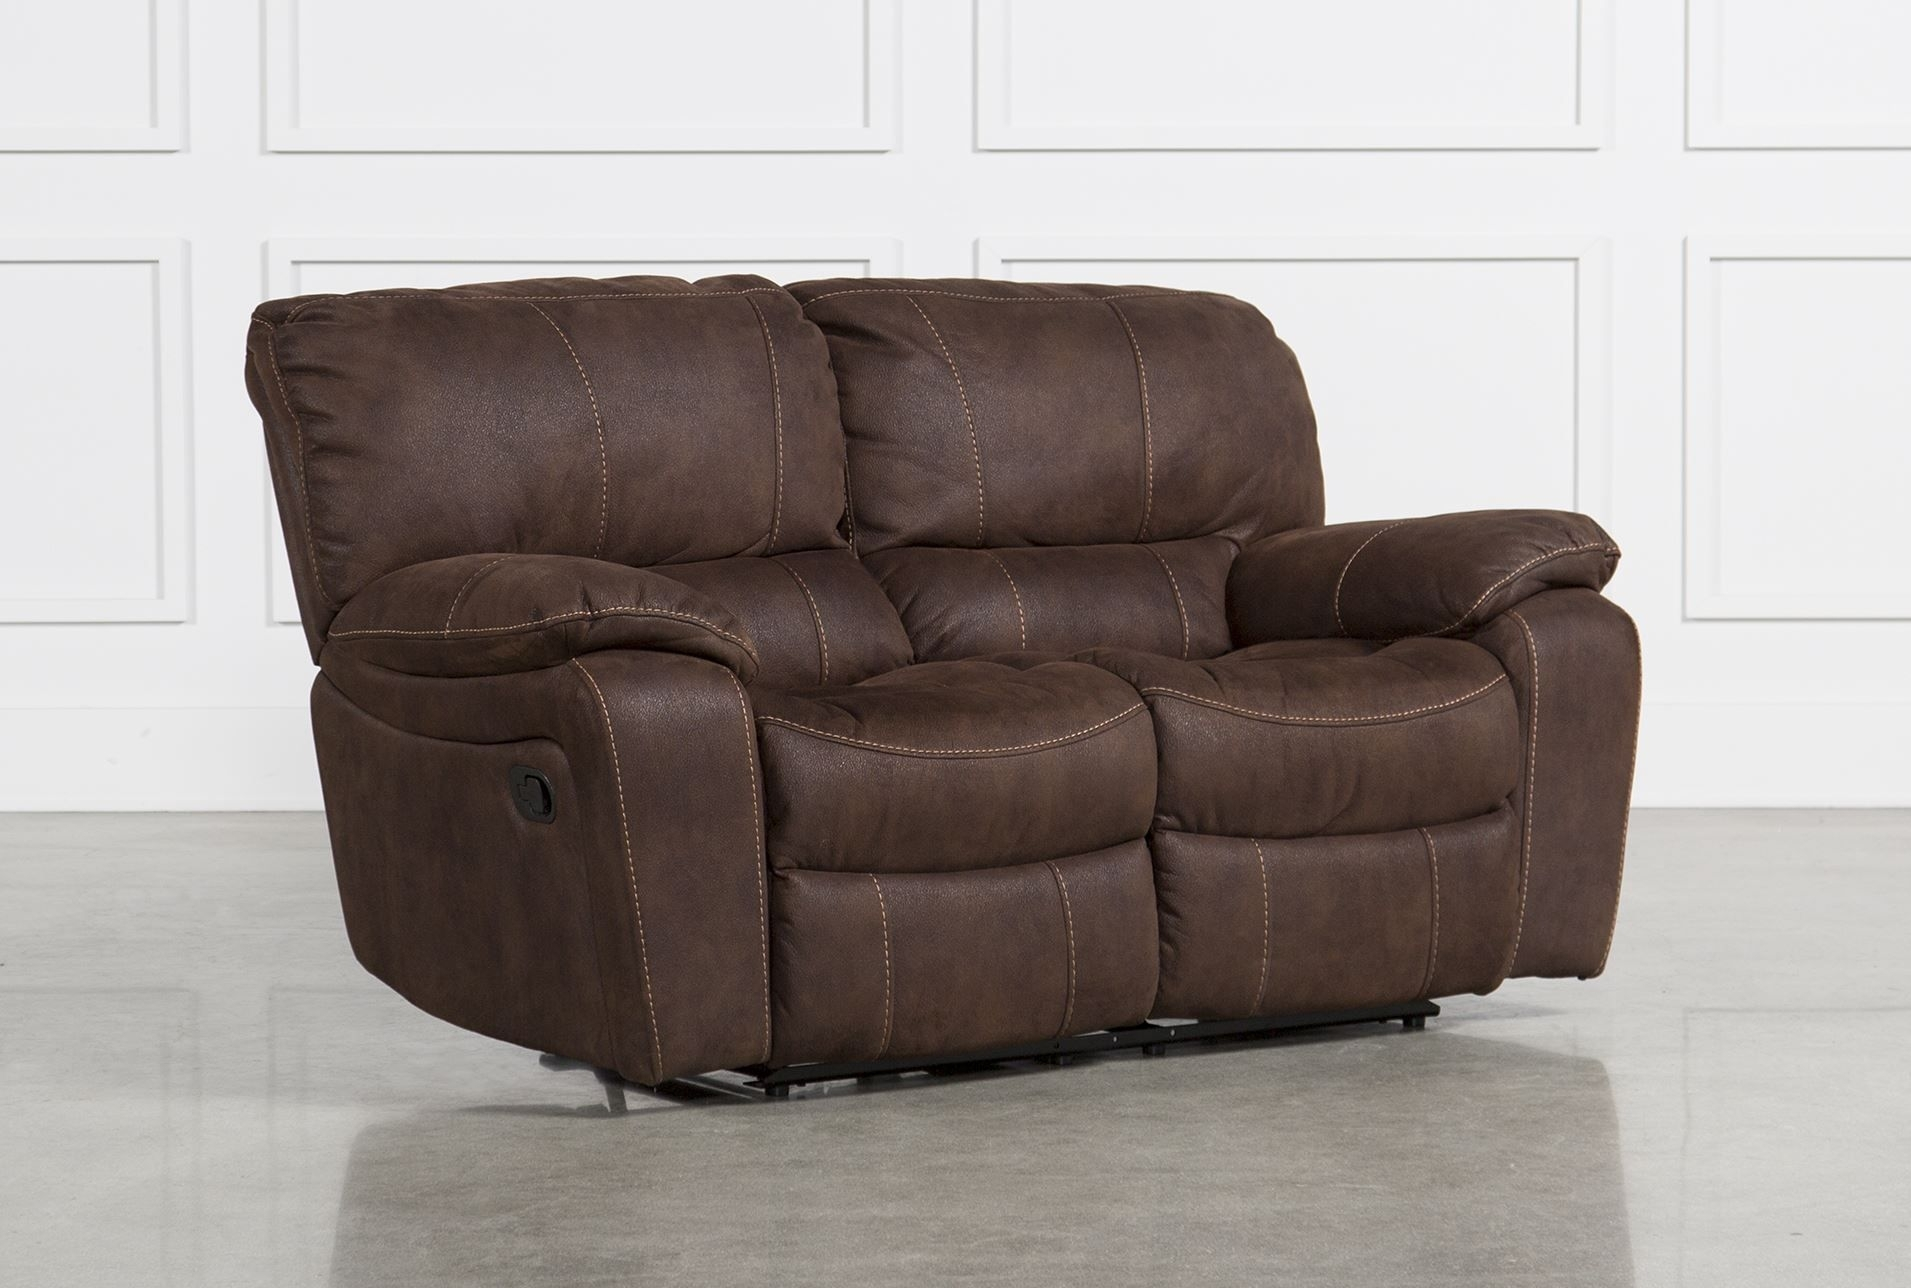 Langdon Reclining Loveseat - Signature | Sofas/loveseat | Pinterest throughout Tenny Cognac 2 Piece Right Facing Chaise Sectionals With 2 Headrest (Image 15 of 30)